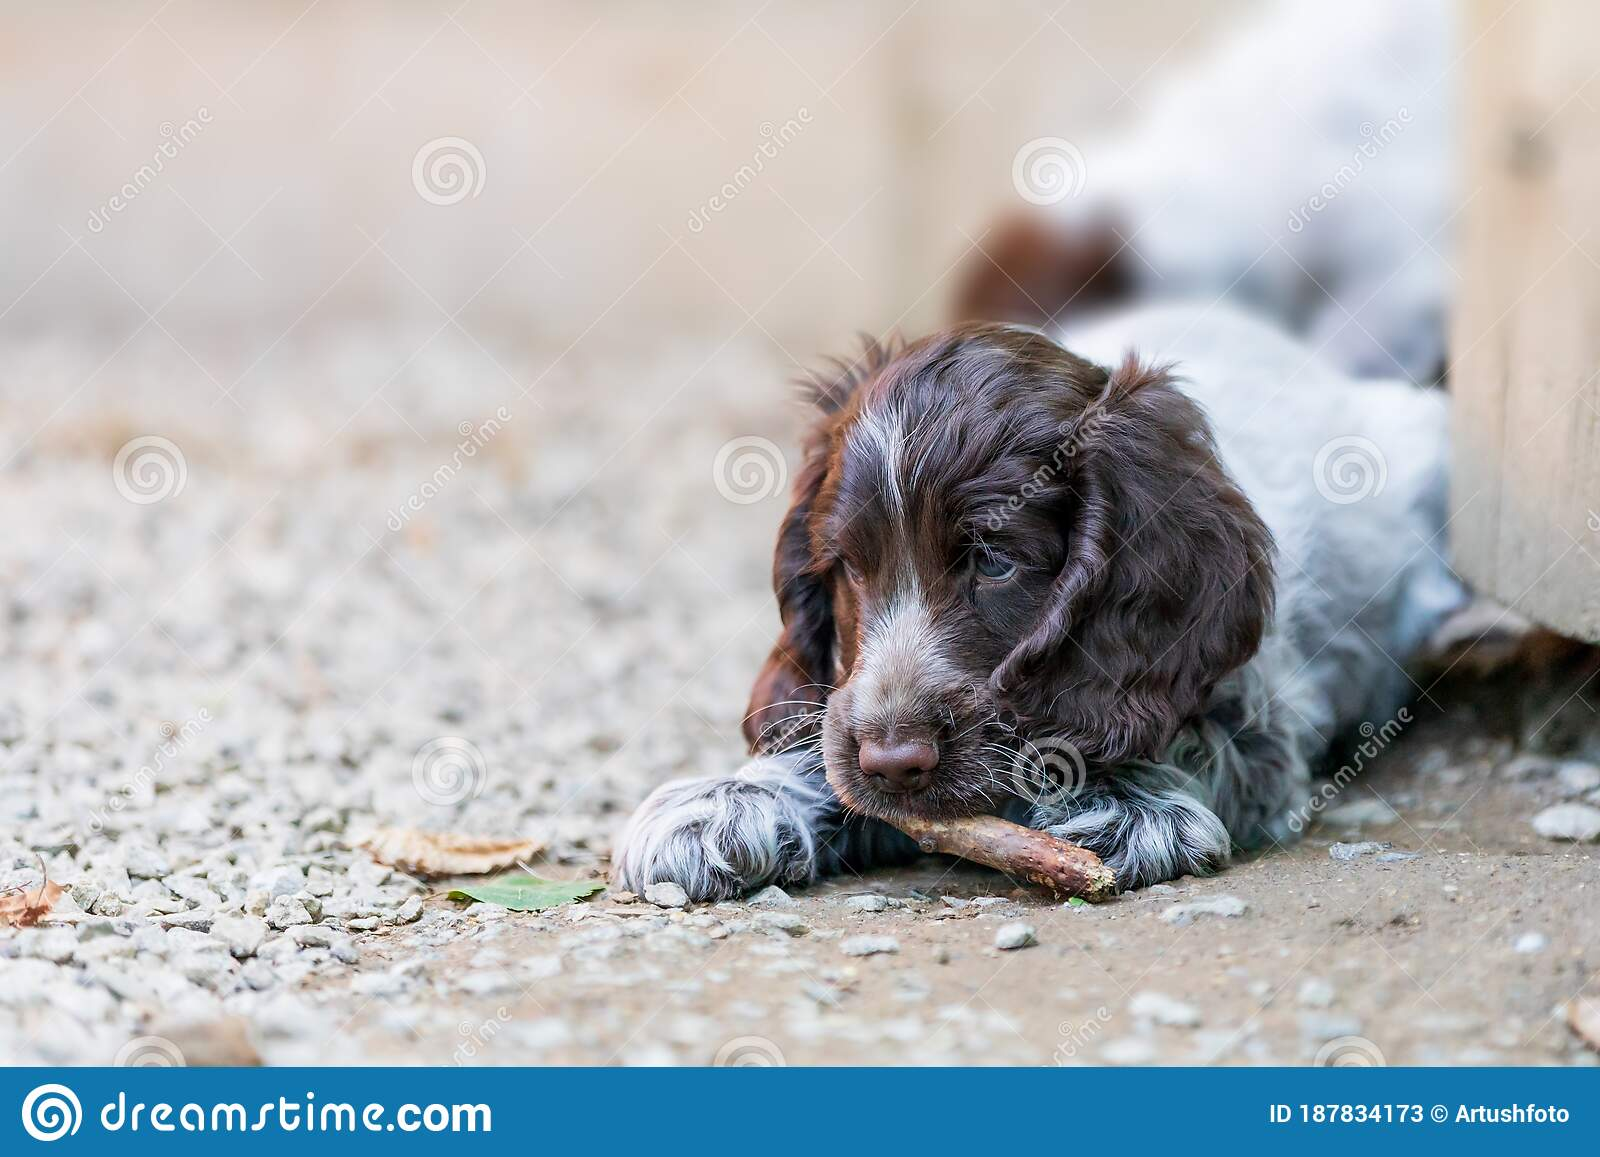 Portrait Of Dog English Cocker Spaniel Puppy Stock Image Image Of Spaniel Breed 187834173